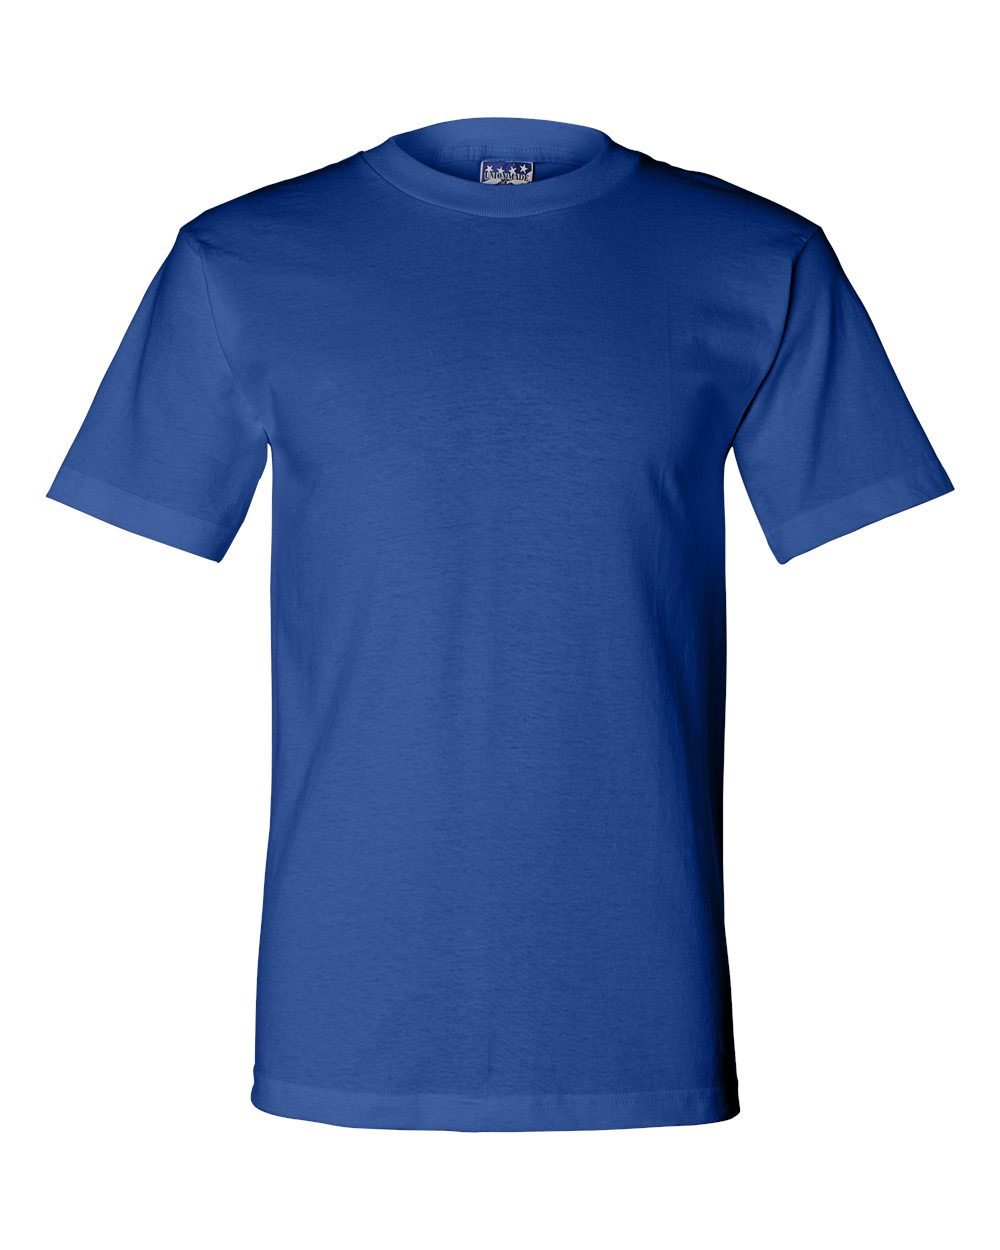 971295ac189a Bayside USA Union Made Unisex Tee - Design Online or Buy It Blank